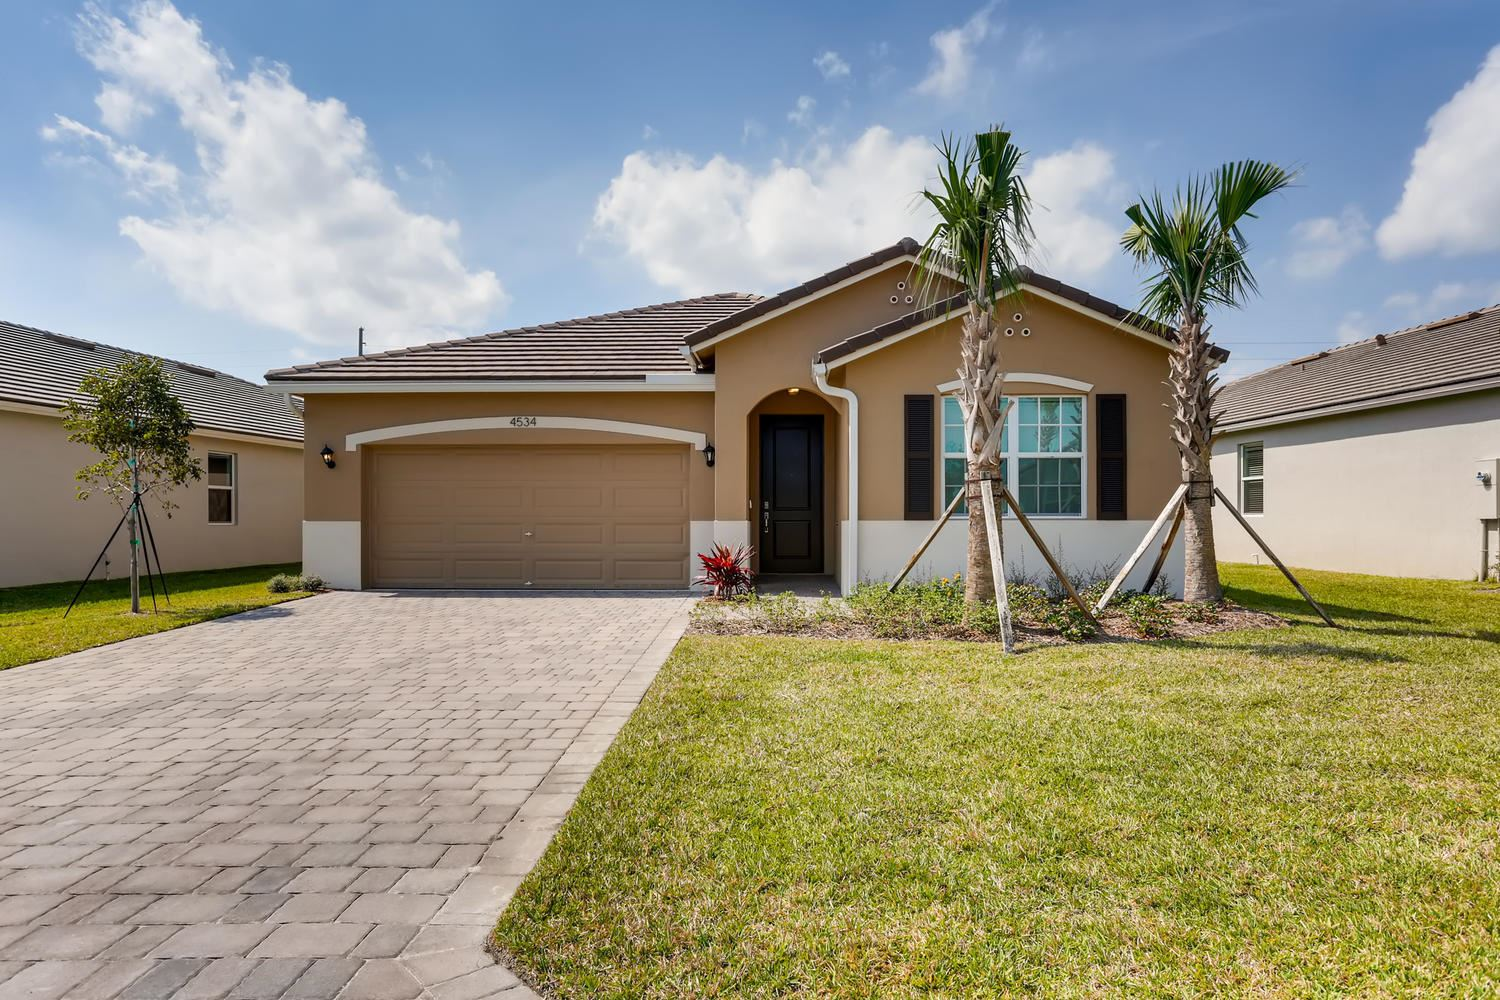 4534 NW King Court, Jensen Beach, FL 34957 - #: RX-10537802